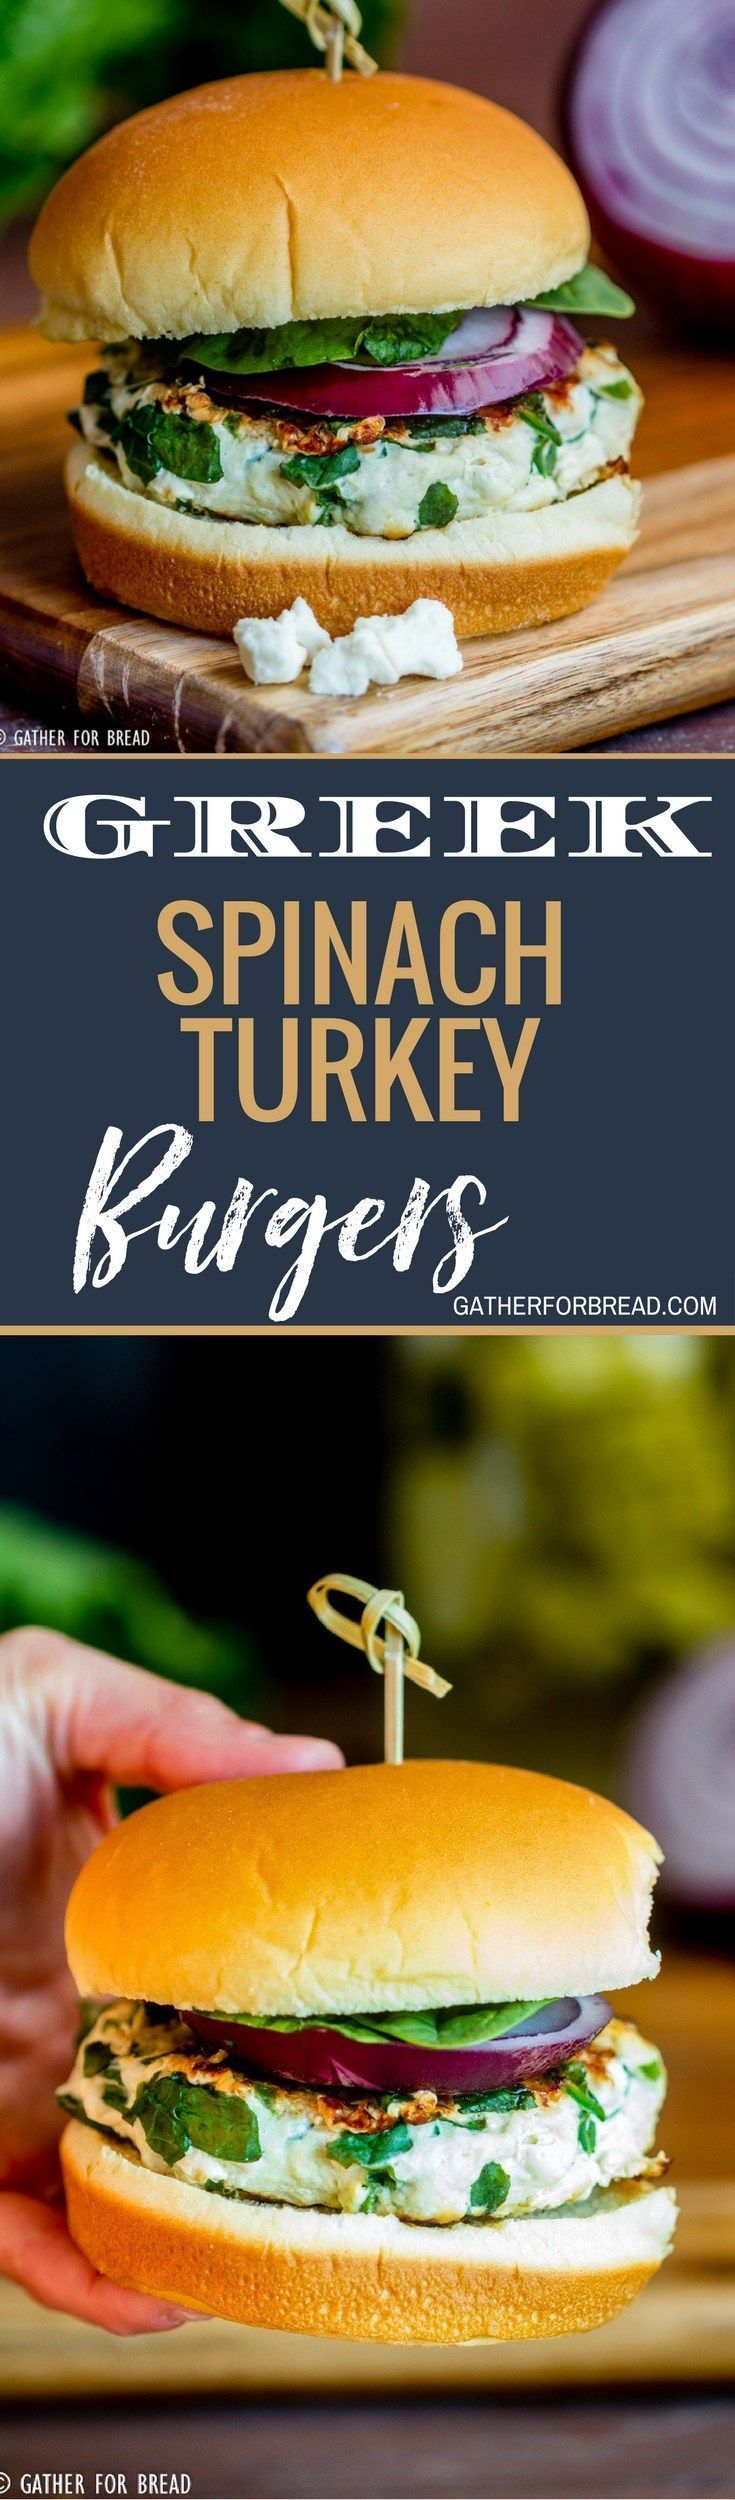 Greek Spinach Turkey Burgers – Turkey burger recipe with fresh spinach and feta cheese for a Greek style burger. Delicious, healthy and perfect for grilling in summer.